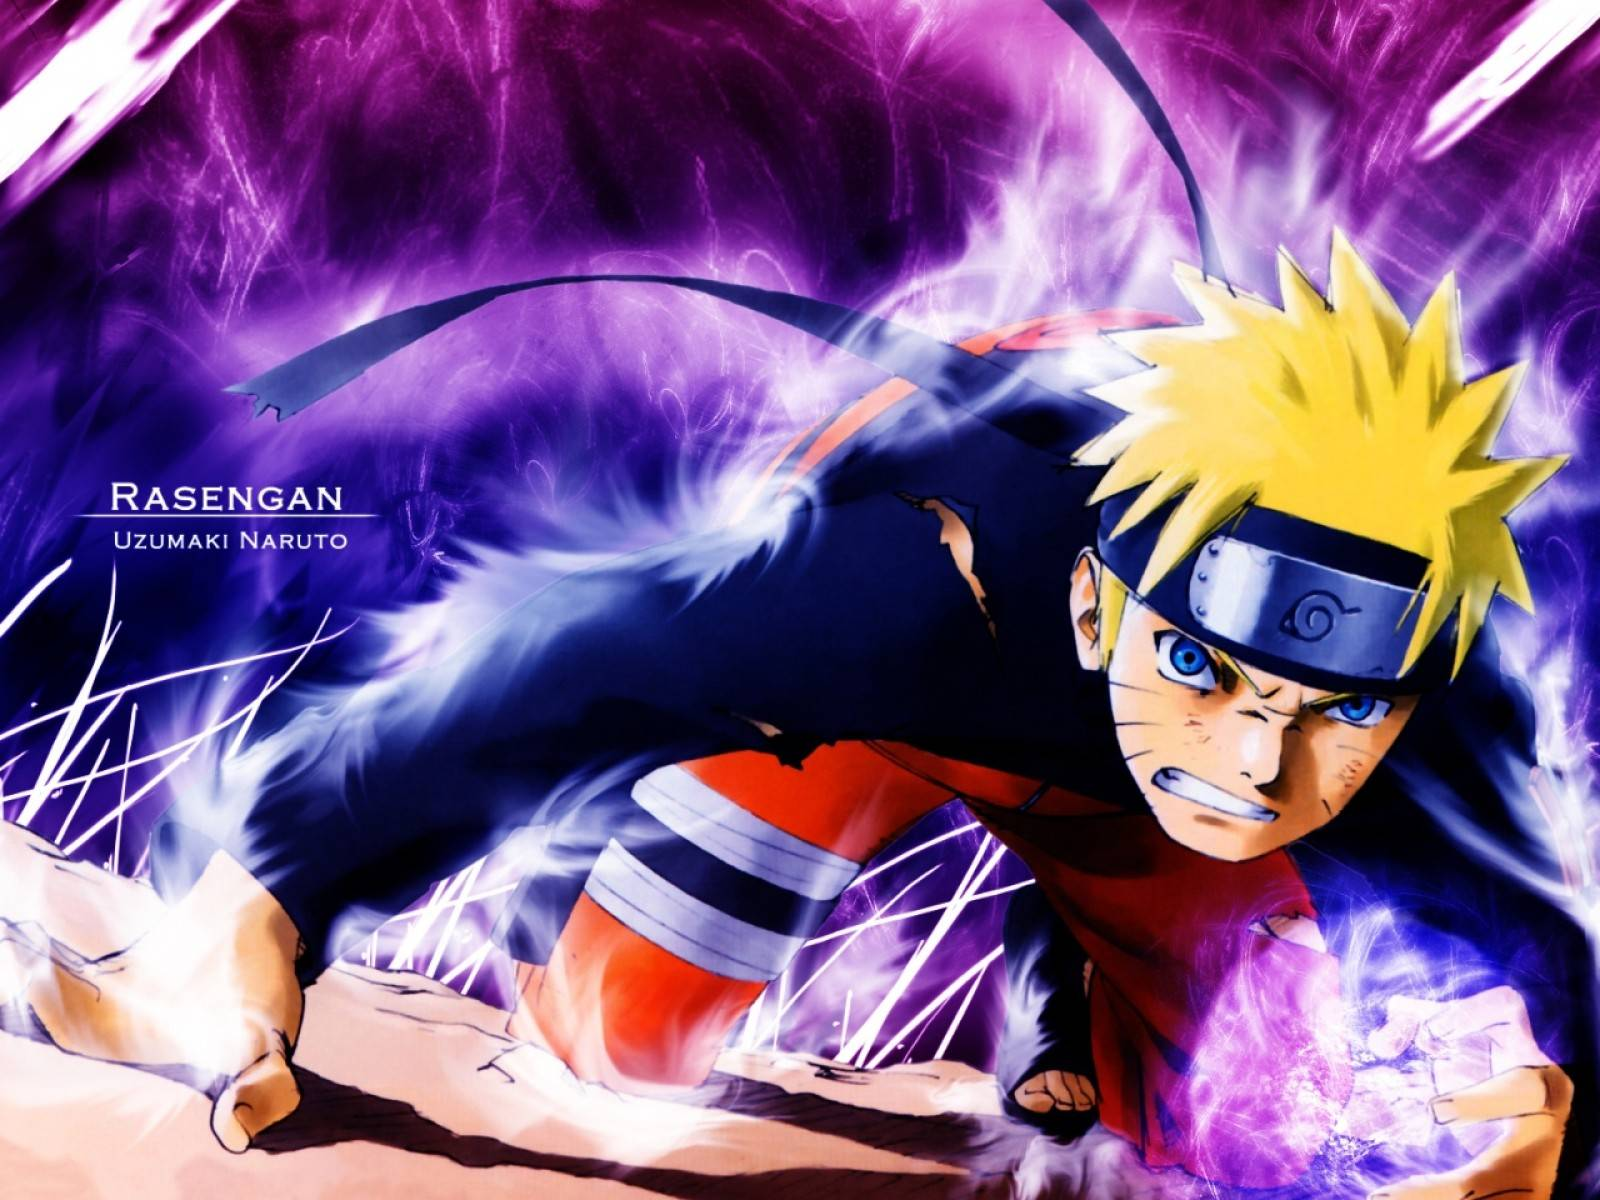 Naruto Shippuden Wallpapers For Android Hd Kadadaorg